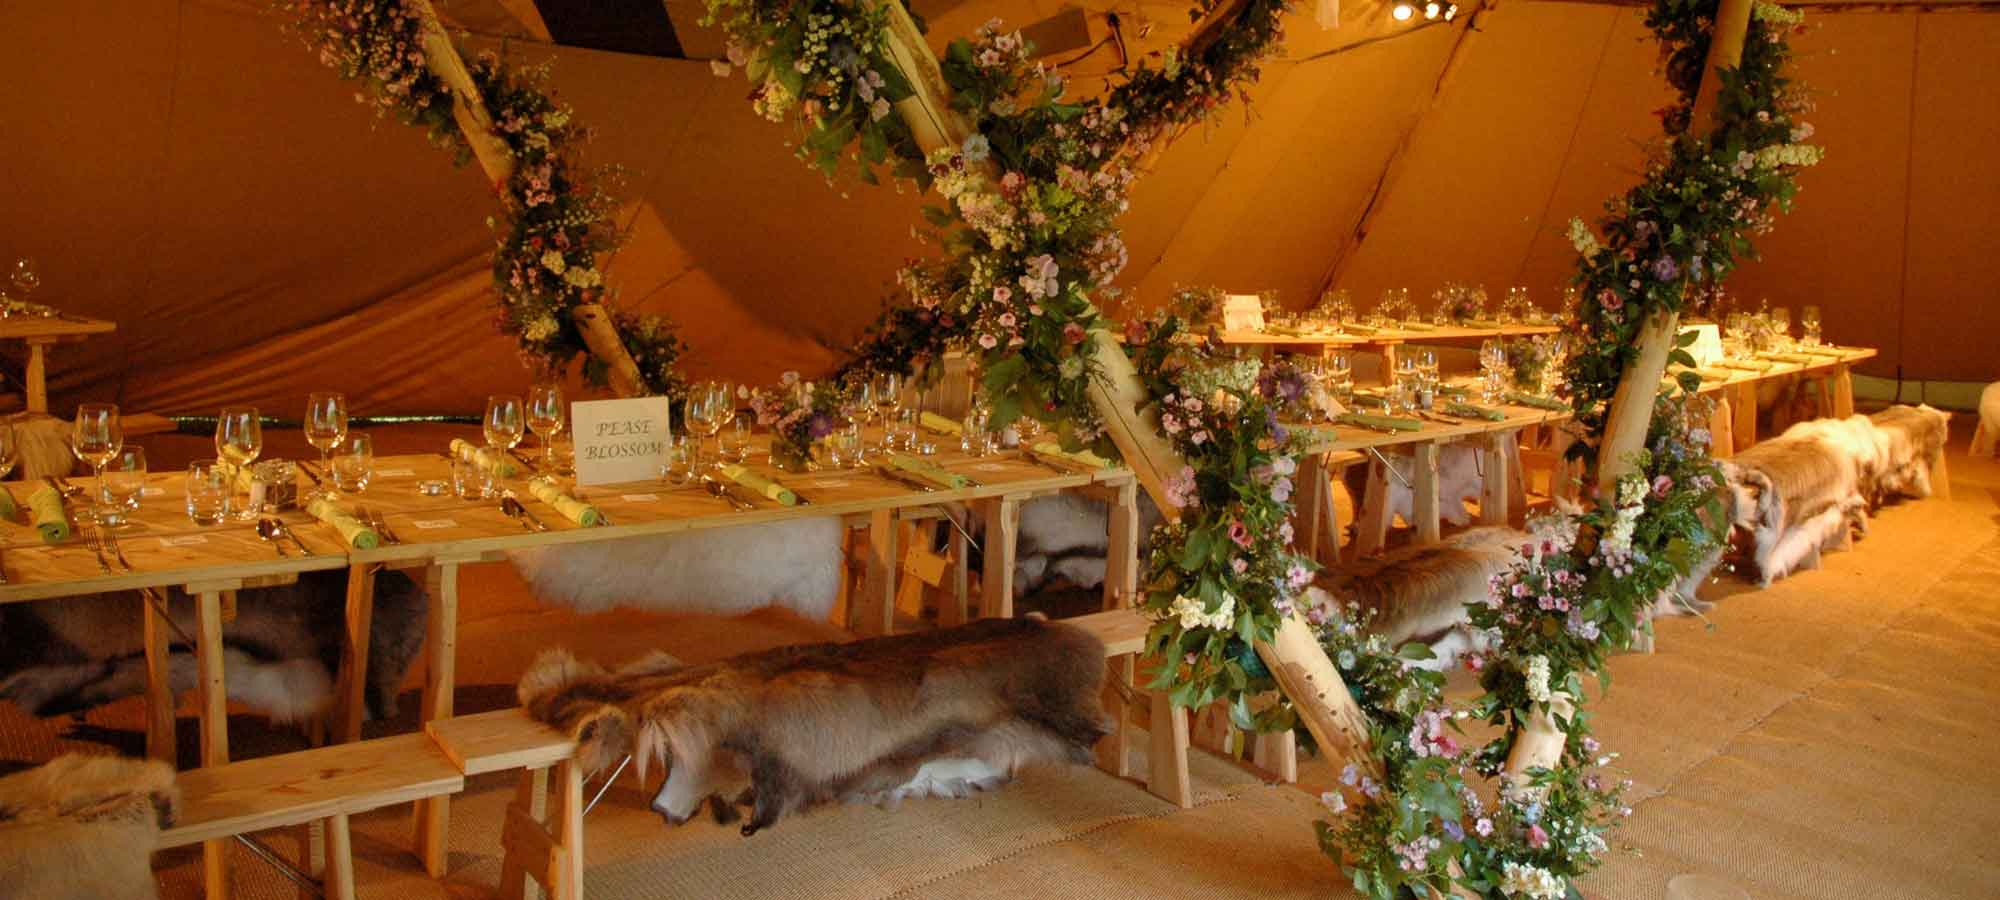 Tentipi reindeer hides - giant hat wedding tipi to purchase